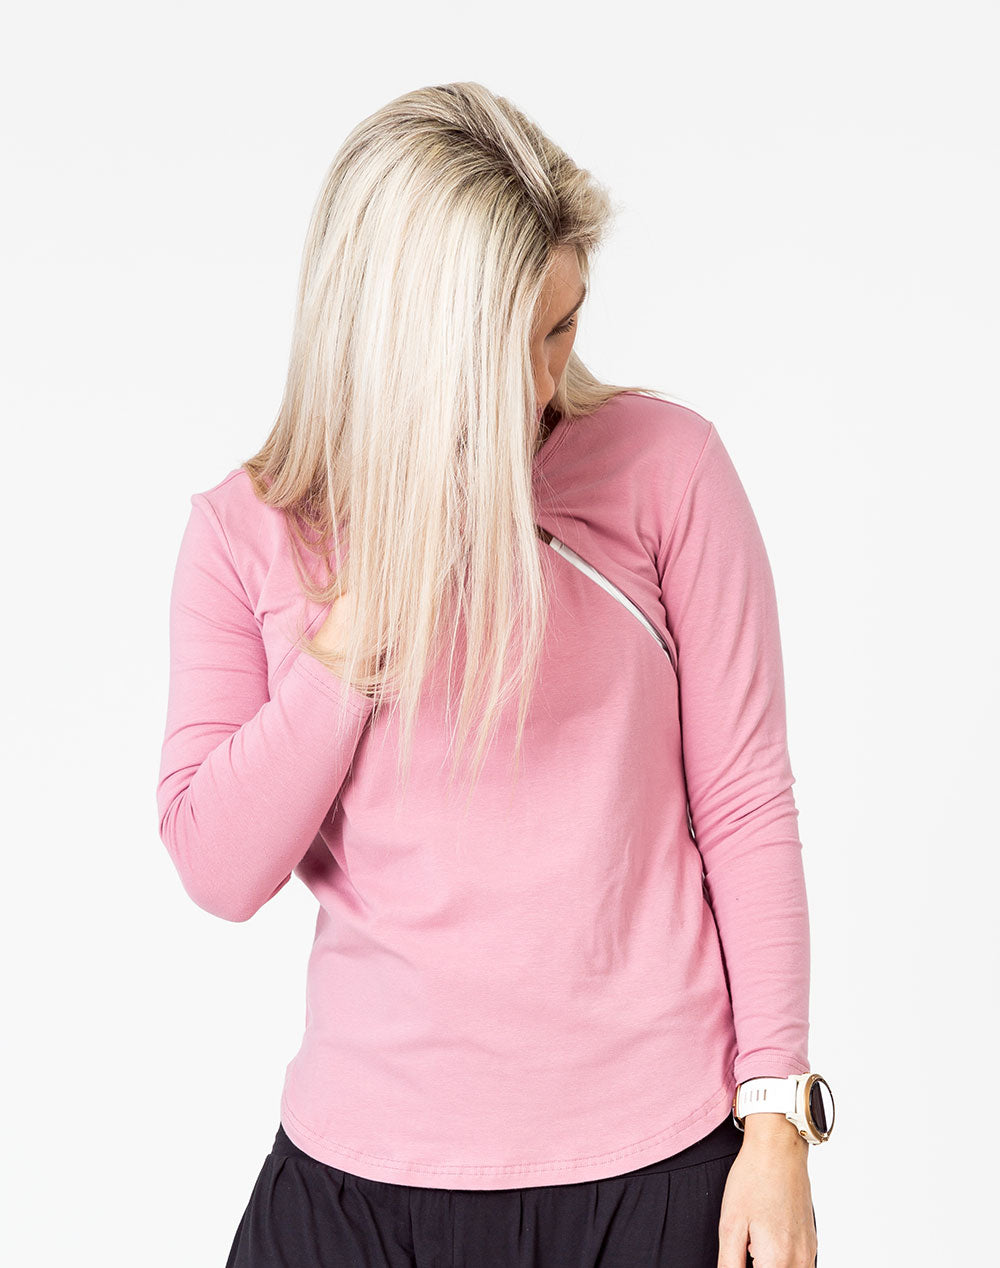 front view of a mum wearing a pink maternity top with long sleeves and invisible zips